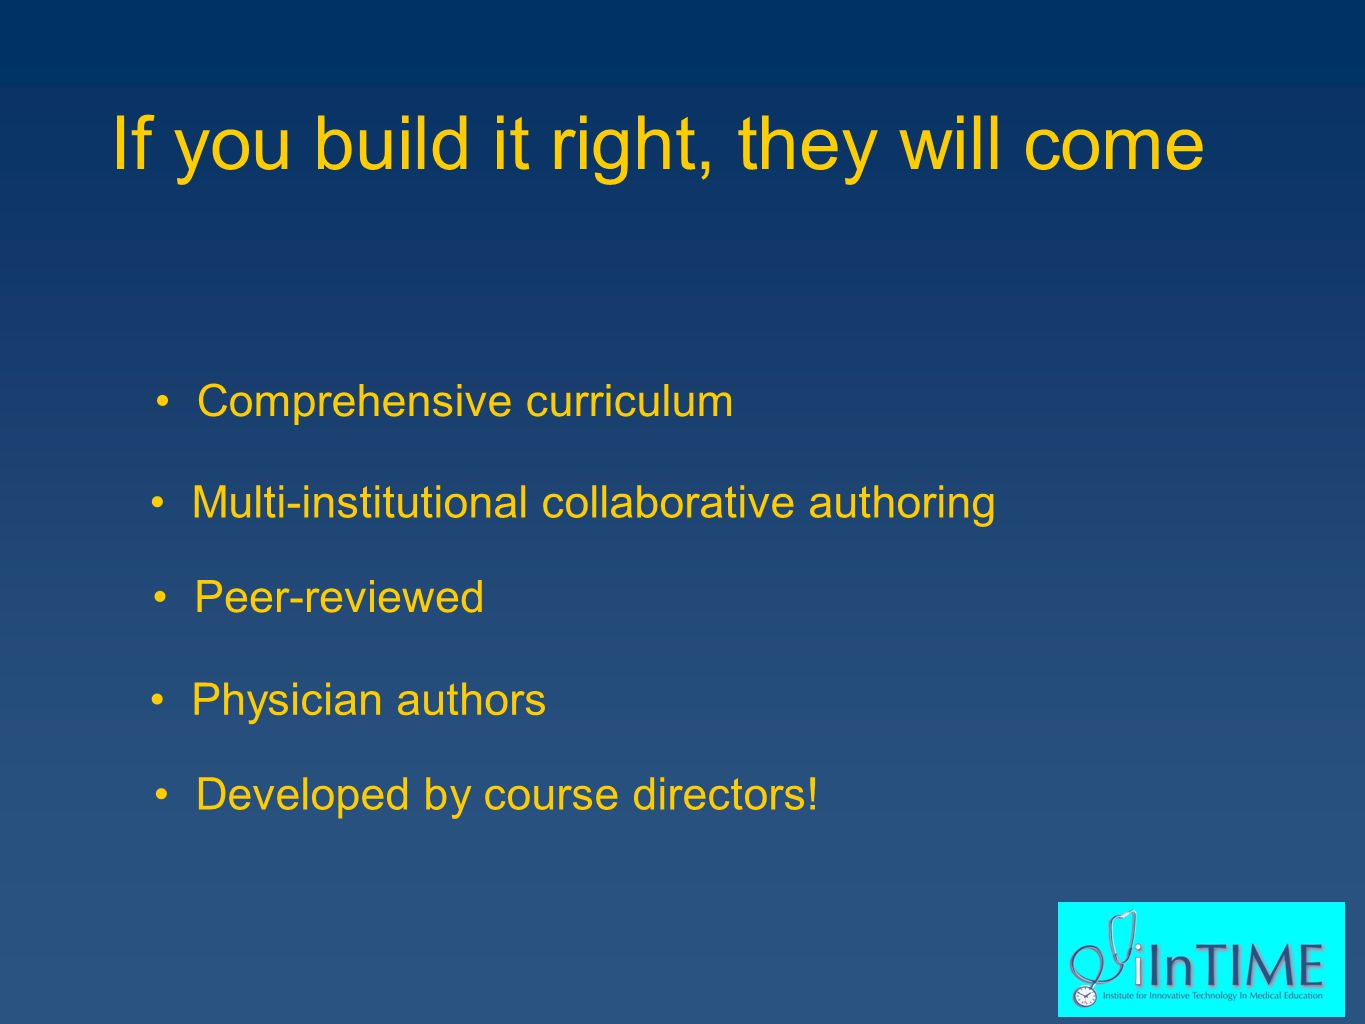 If you build it right, they will come Comprehensive curriculum Multi-institutional collaborative authoring Peer-reviewed Physician authors Developed by course directors!